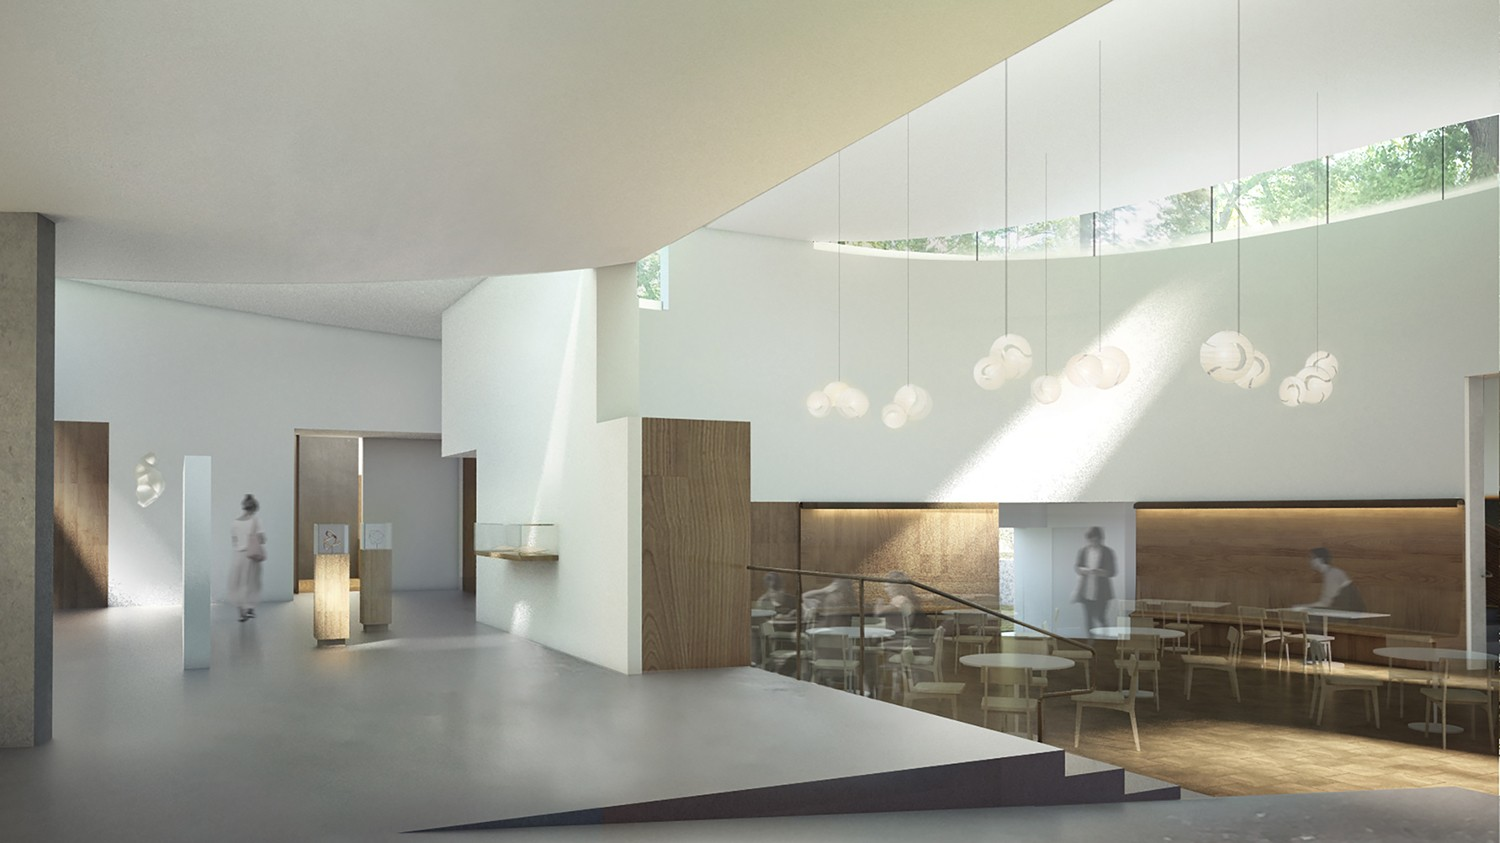 https://s3.us-east-2.amazonaws.com/steven-holl/uploads/projects/project-images/StevenHollArchitects_IAS_Cafe_WH.jpg